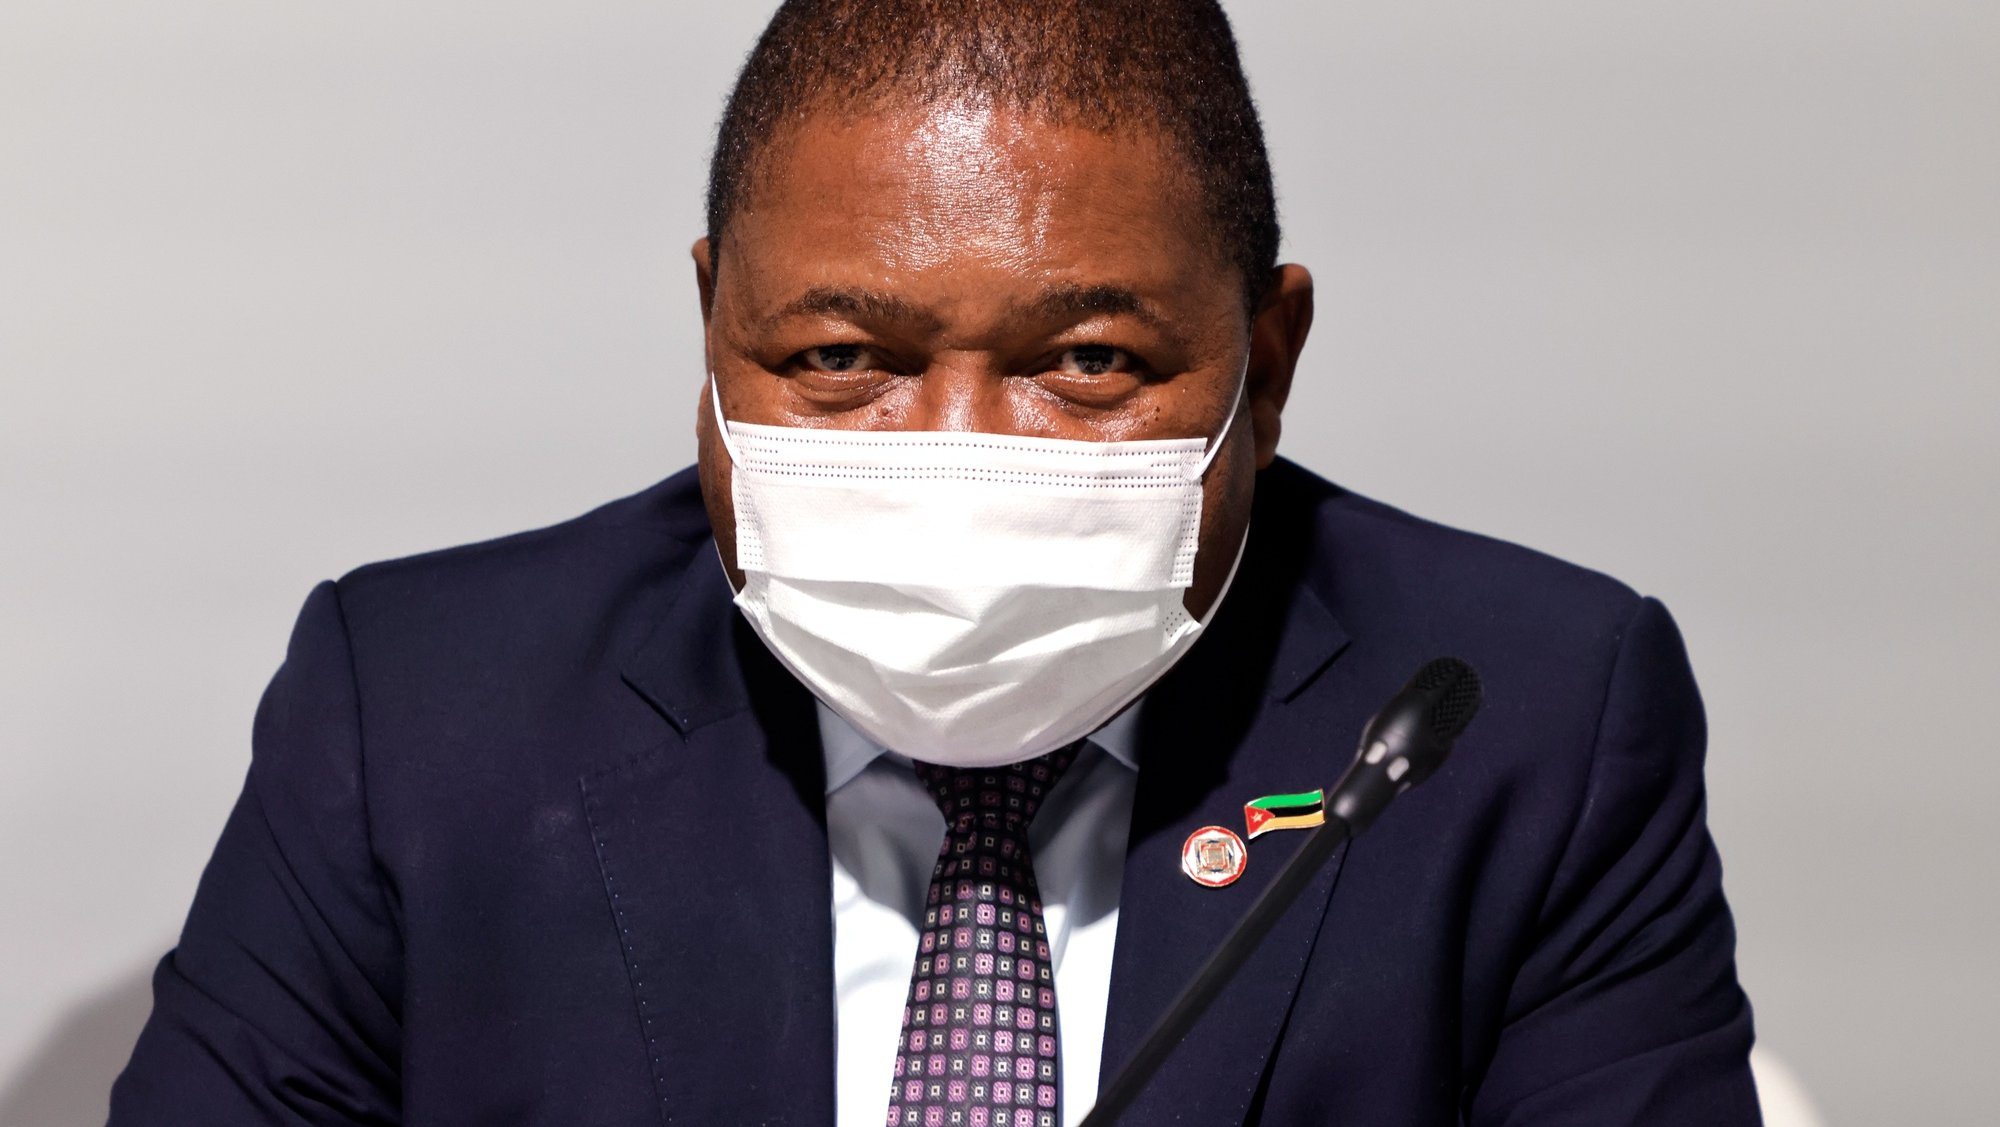 epa09208775 Mozambique's President Filipe Nyusi poses before the opening session of the Summit on the Financing of African Economies in Paris, France, 18 May 2021.  EPA/LUDOVIC MARIN / POOL  MAXPPP OUT